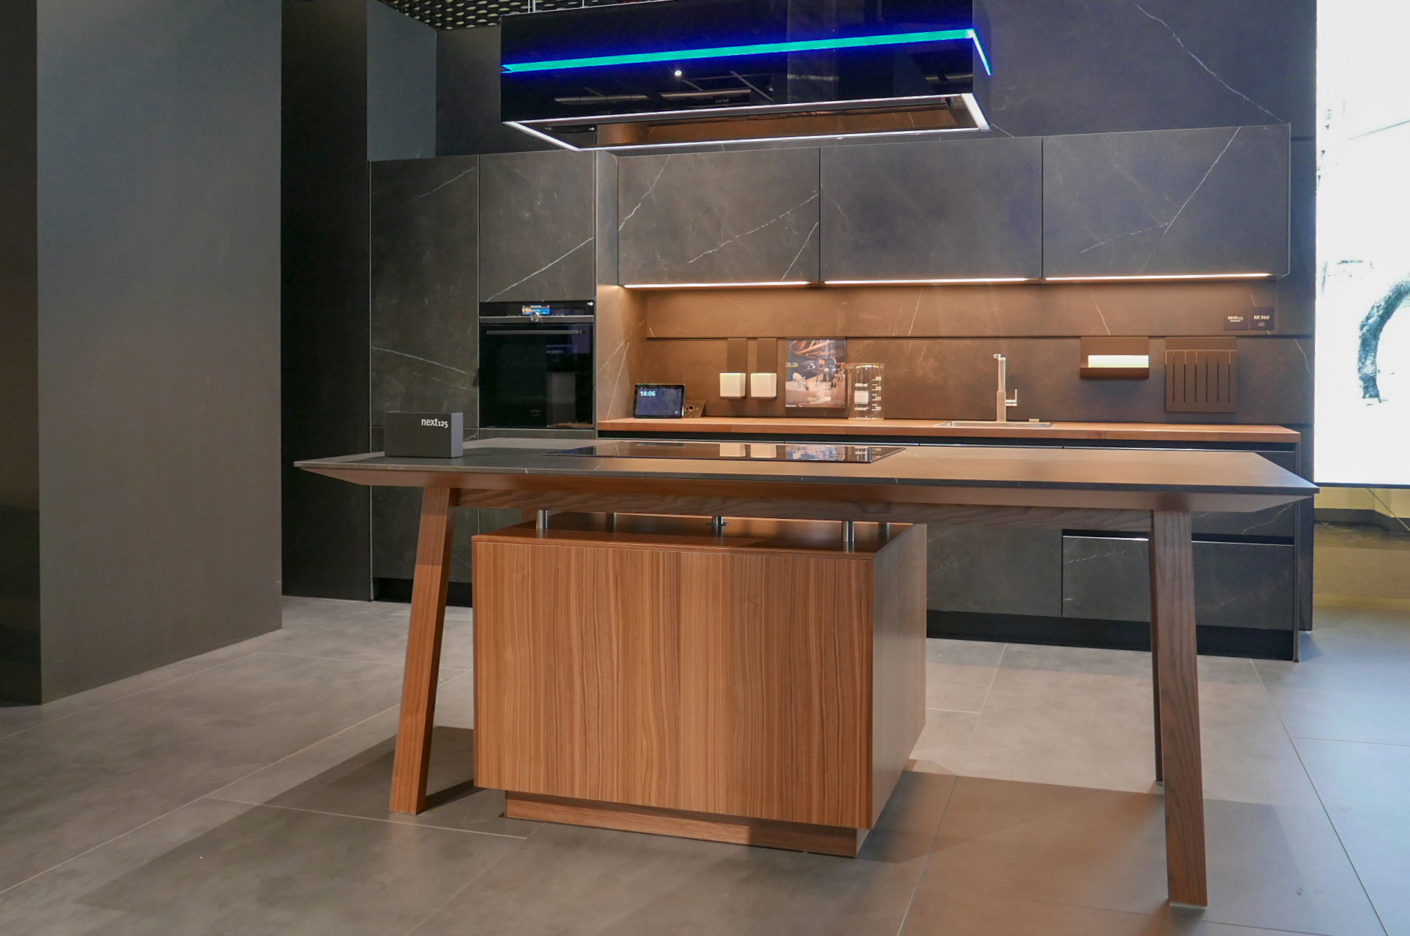 The cooking table is a characteristic design element in next125 kitchens. At Living Kitchen, the company presented it in combination with Smart Home applications.